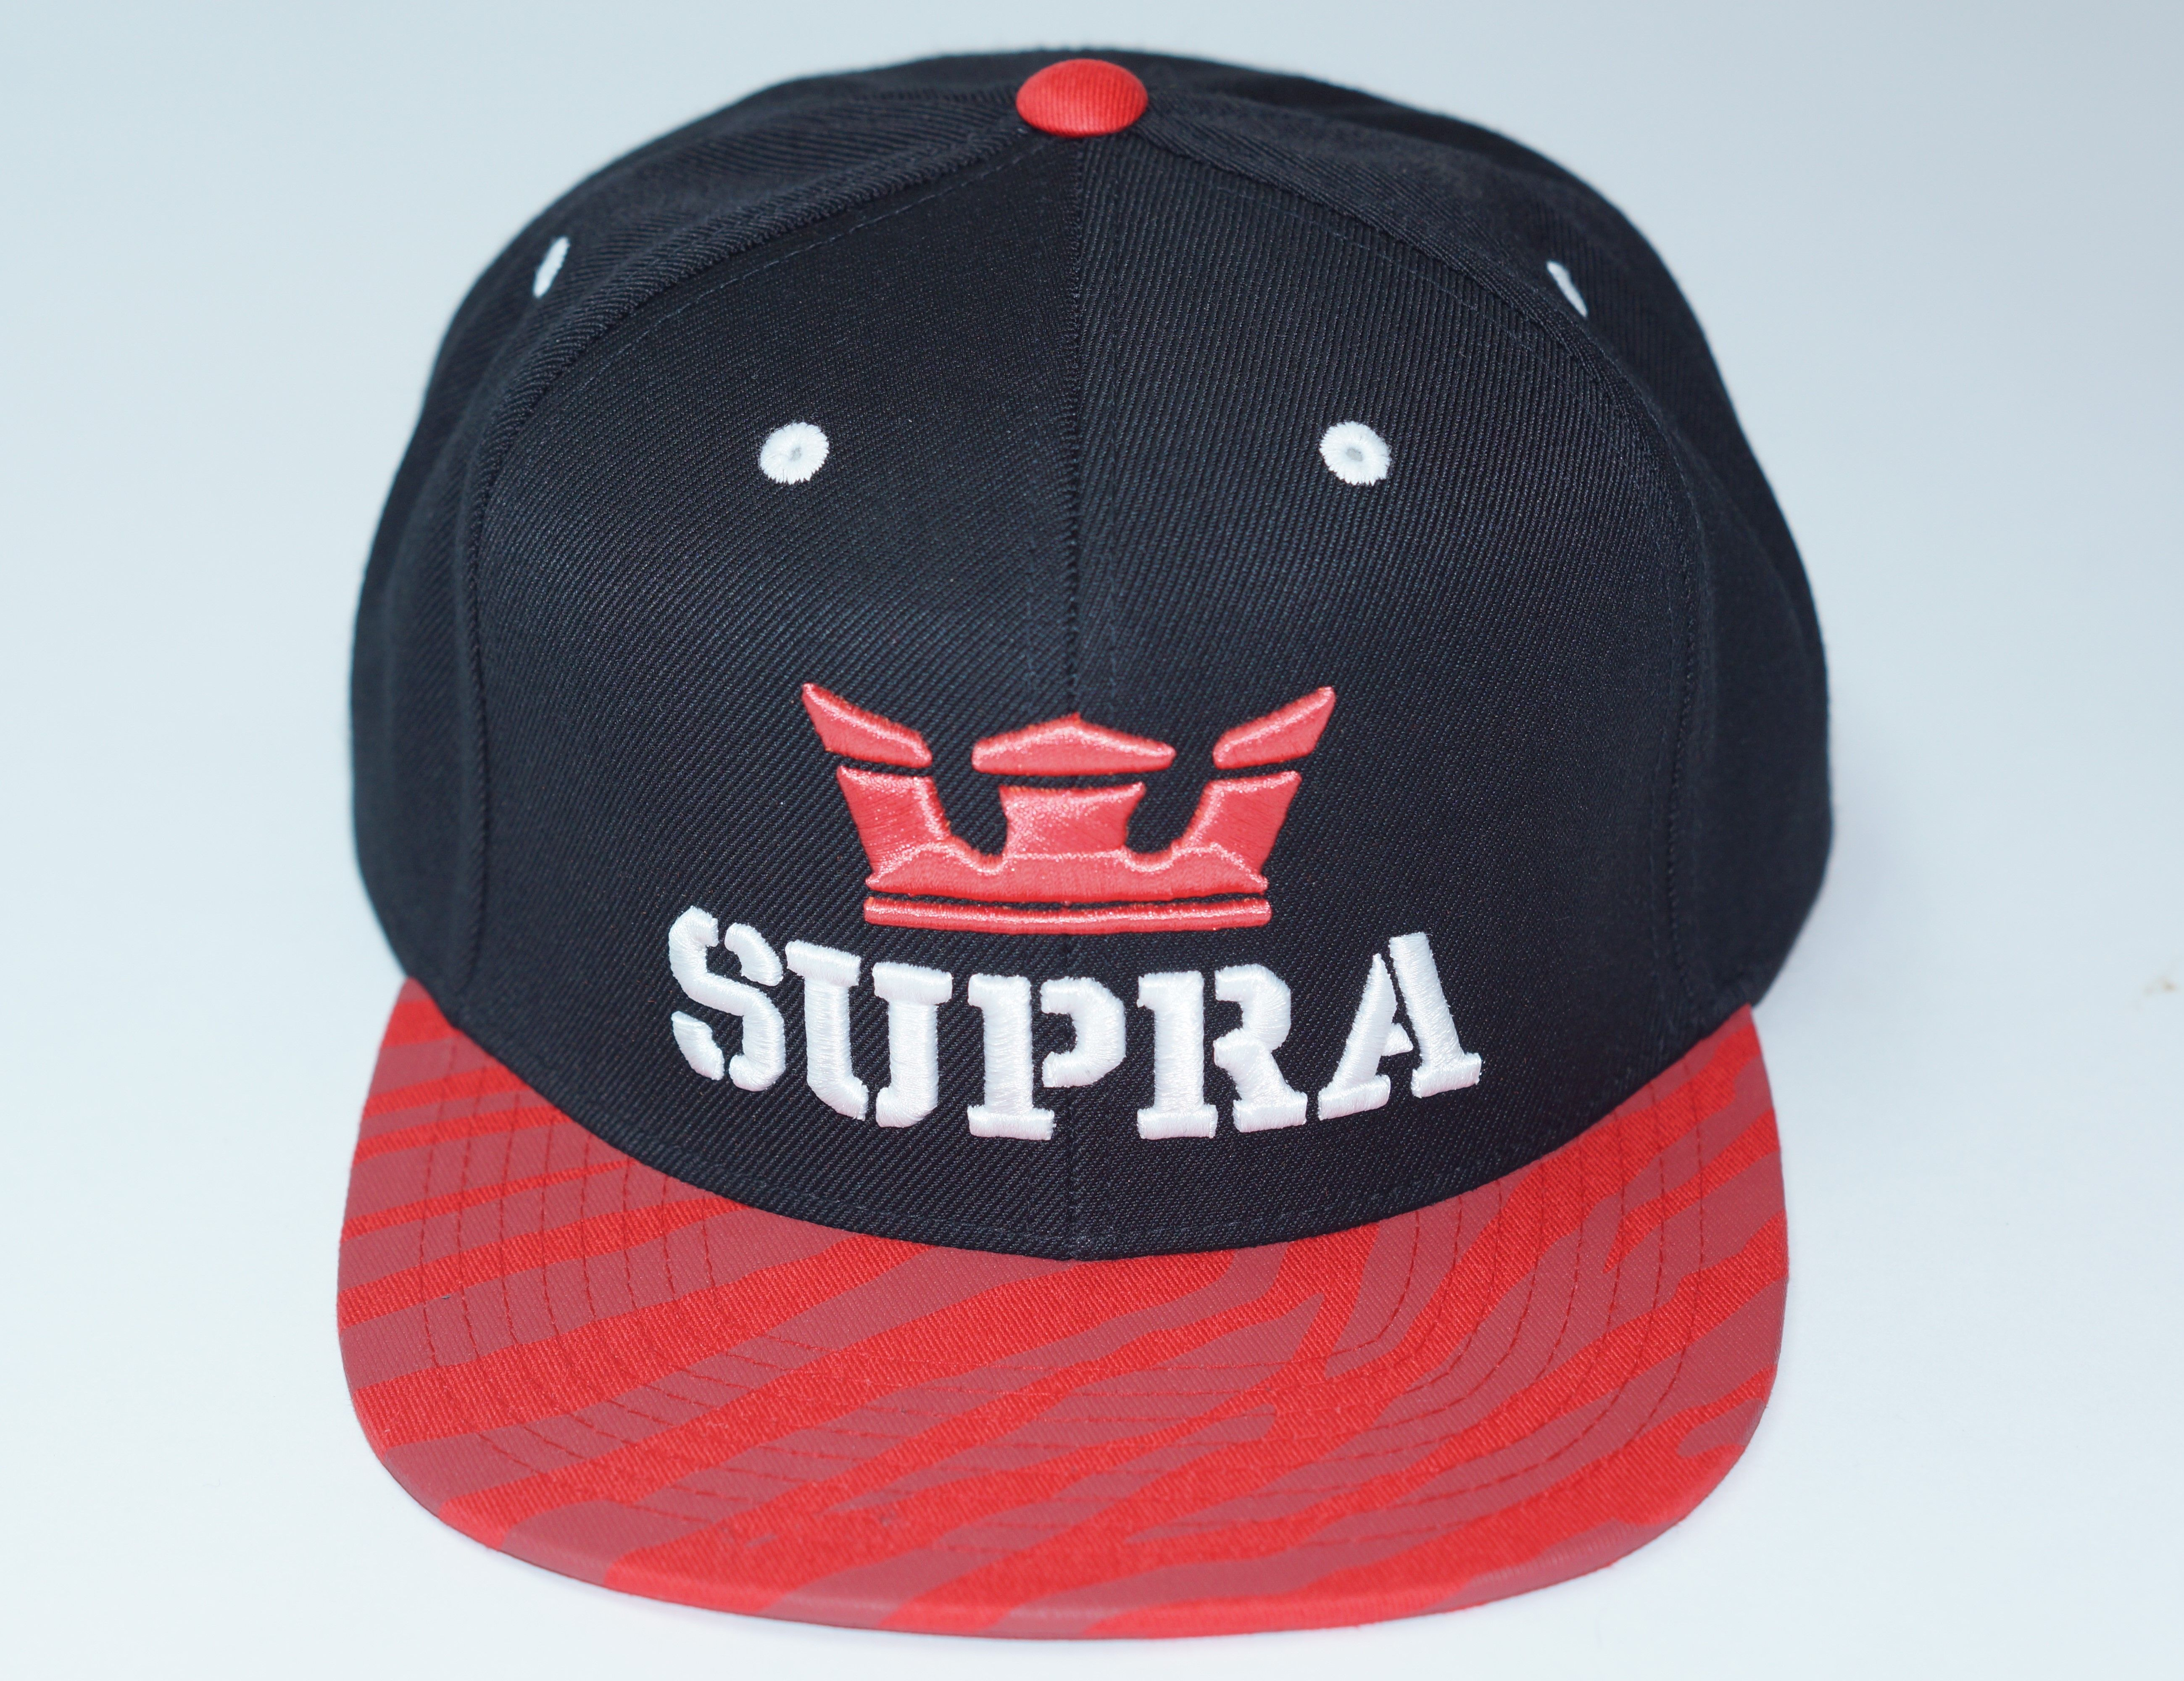 Bengal Above Snapback by Supra Snapbacks are back and you can look fresh  all day with this classic piece! Classic embroidered Supra logo and  lettering on ... 02abee59ba19